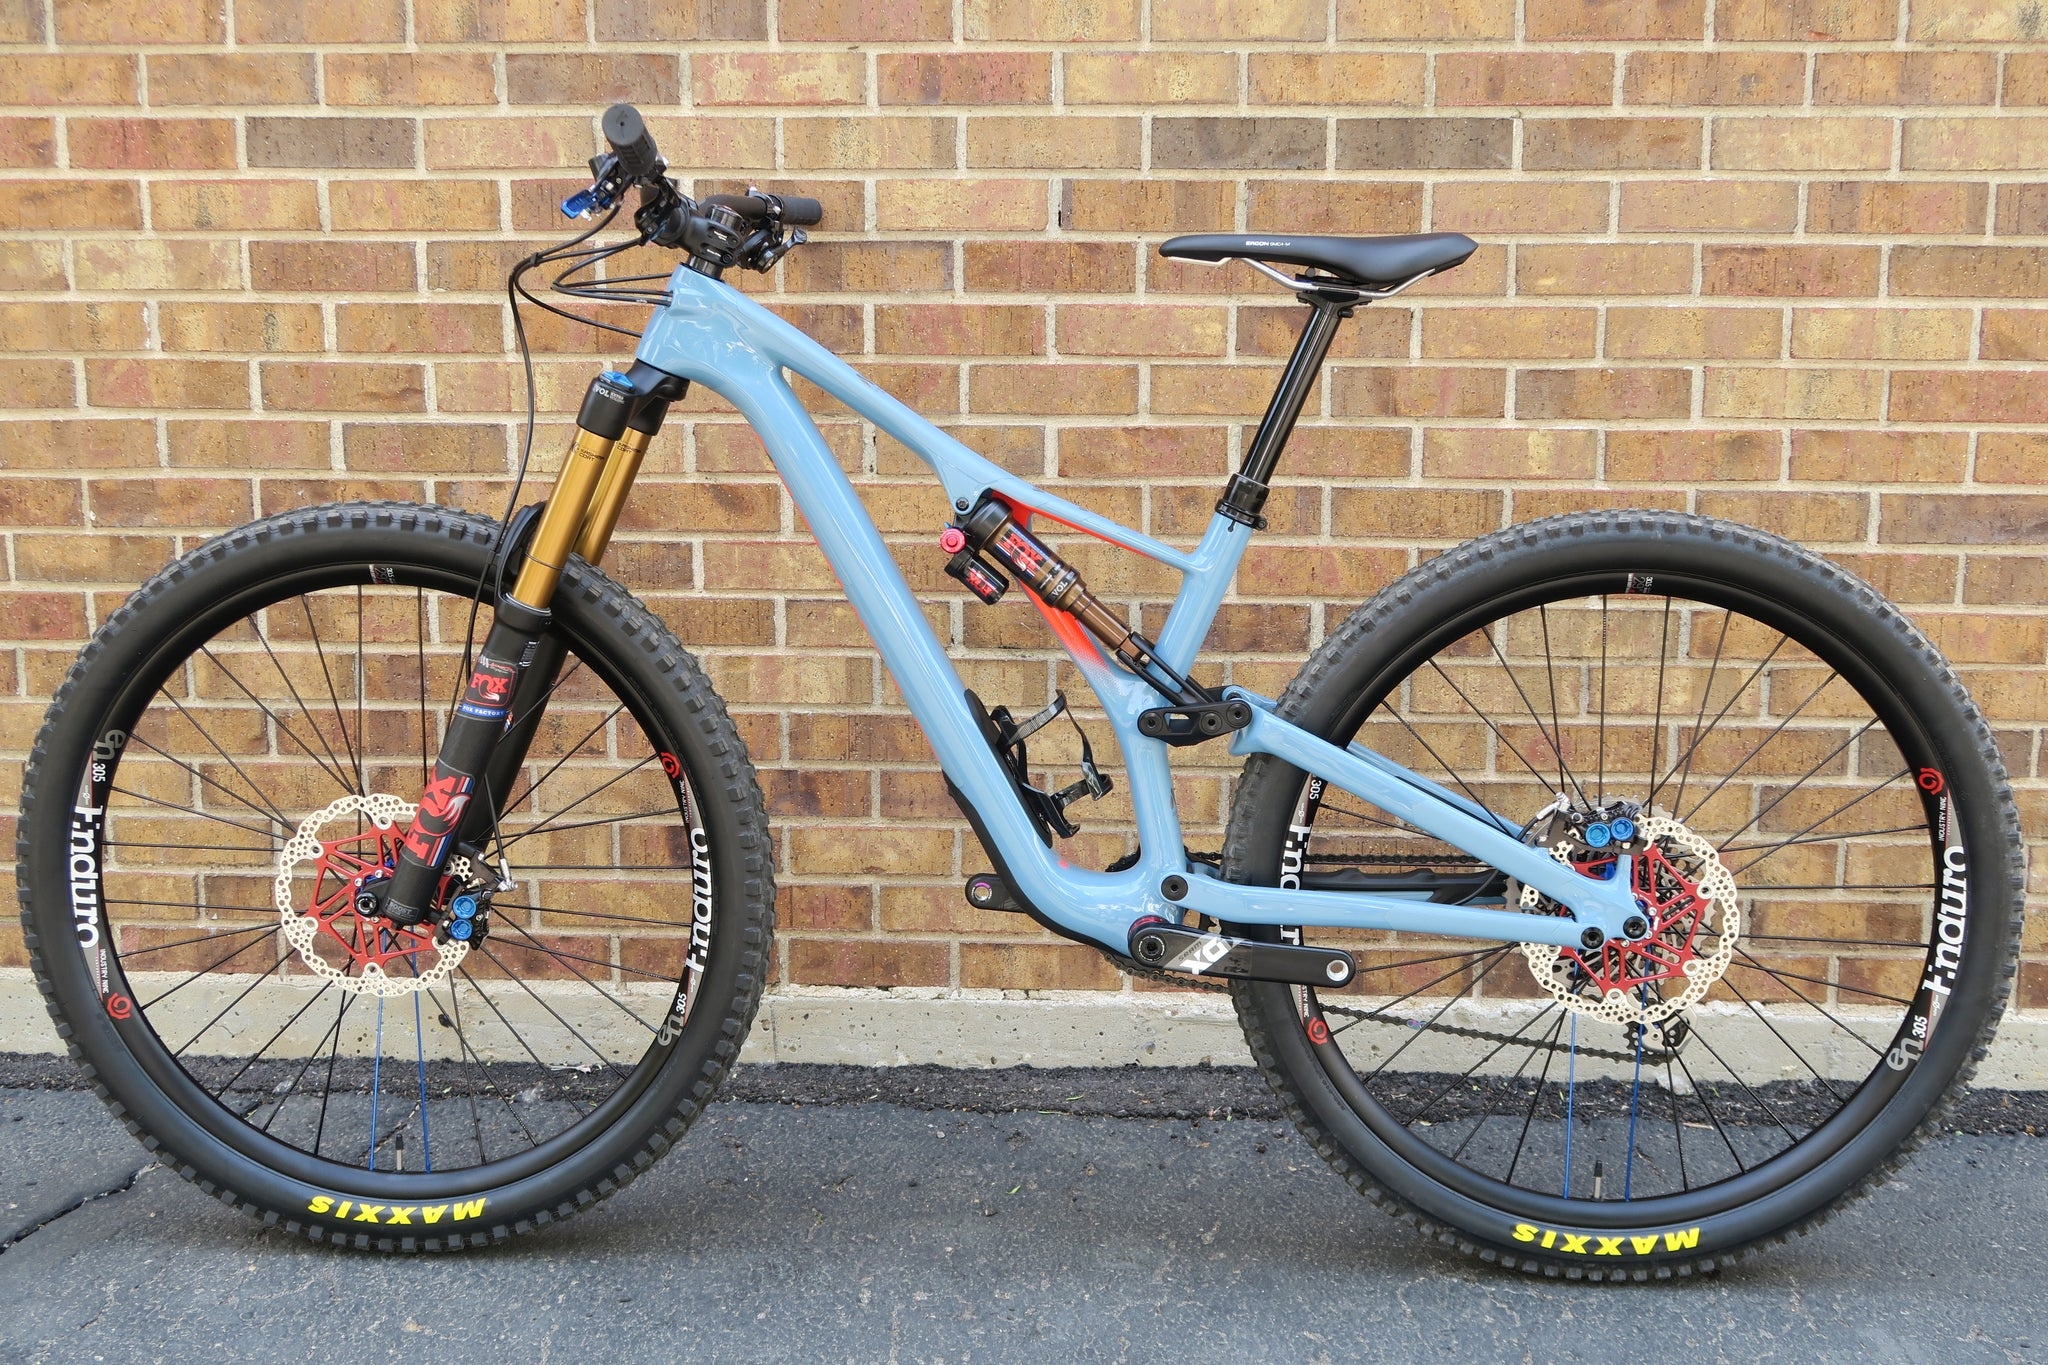 2019 SPECIALIZED STUMPJUMPER EXPERT 29 CARBON